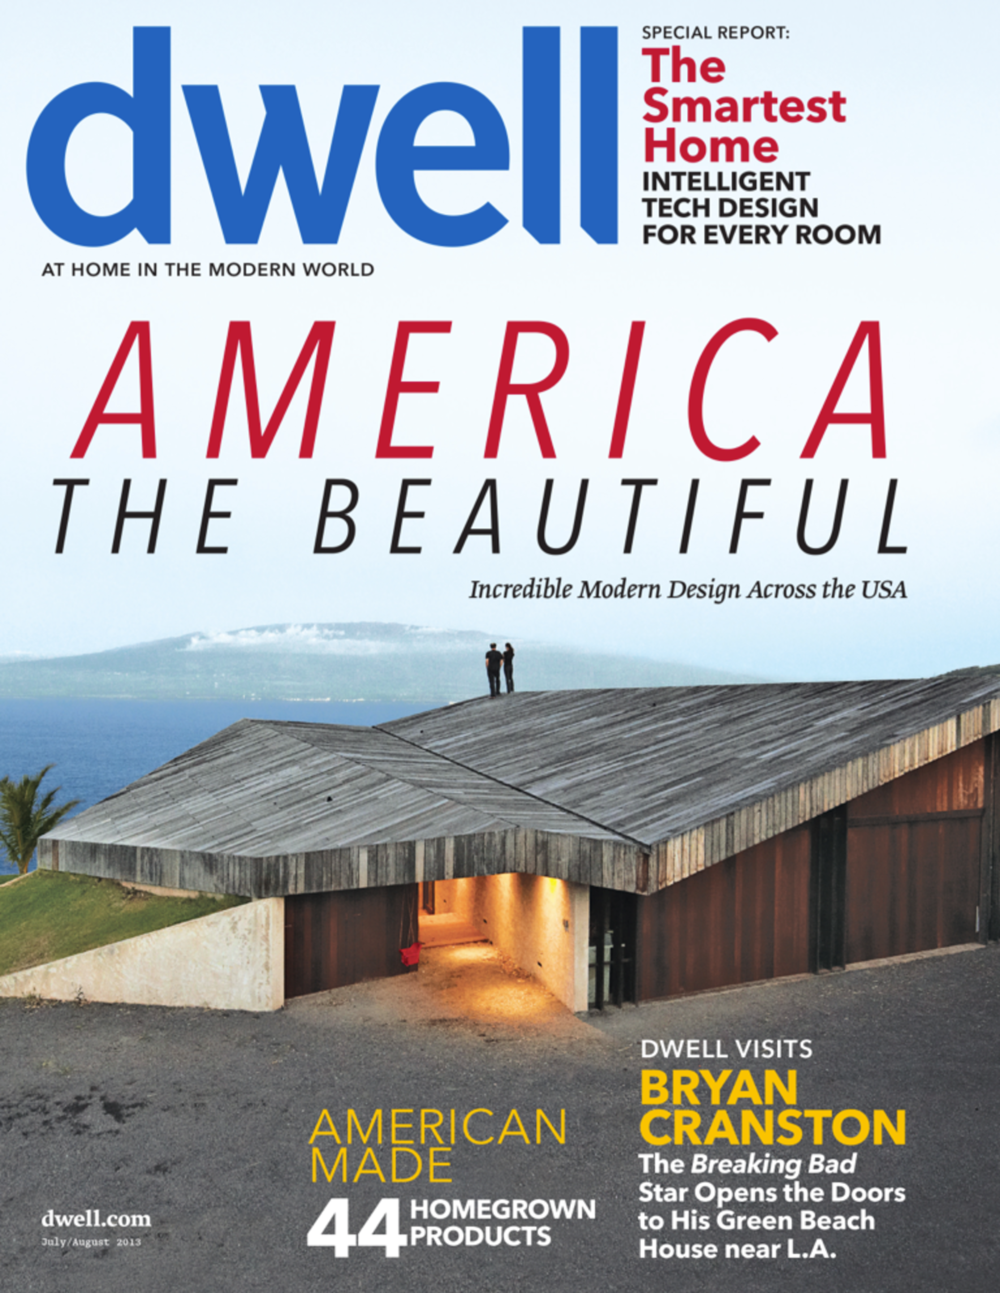 Dwell Magazine. July/August 2013. Print